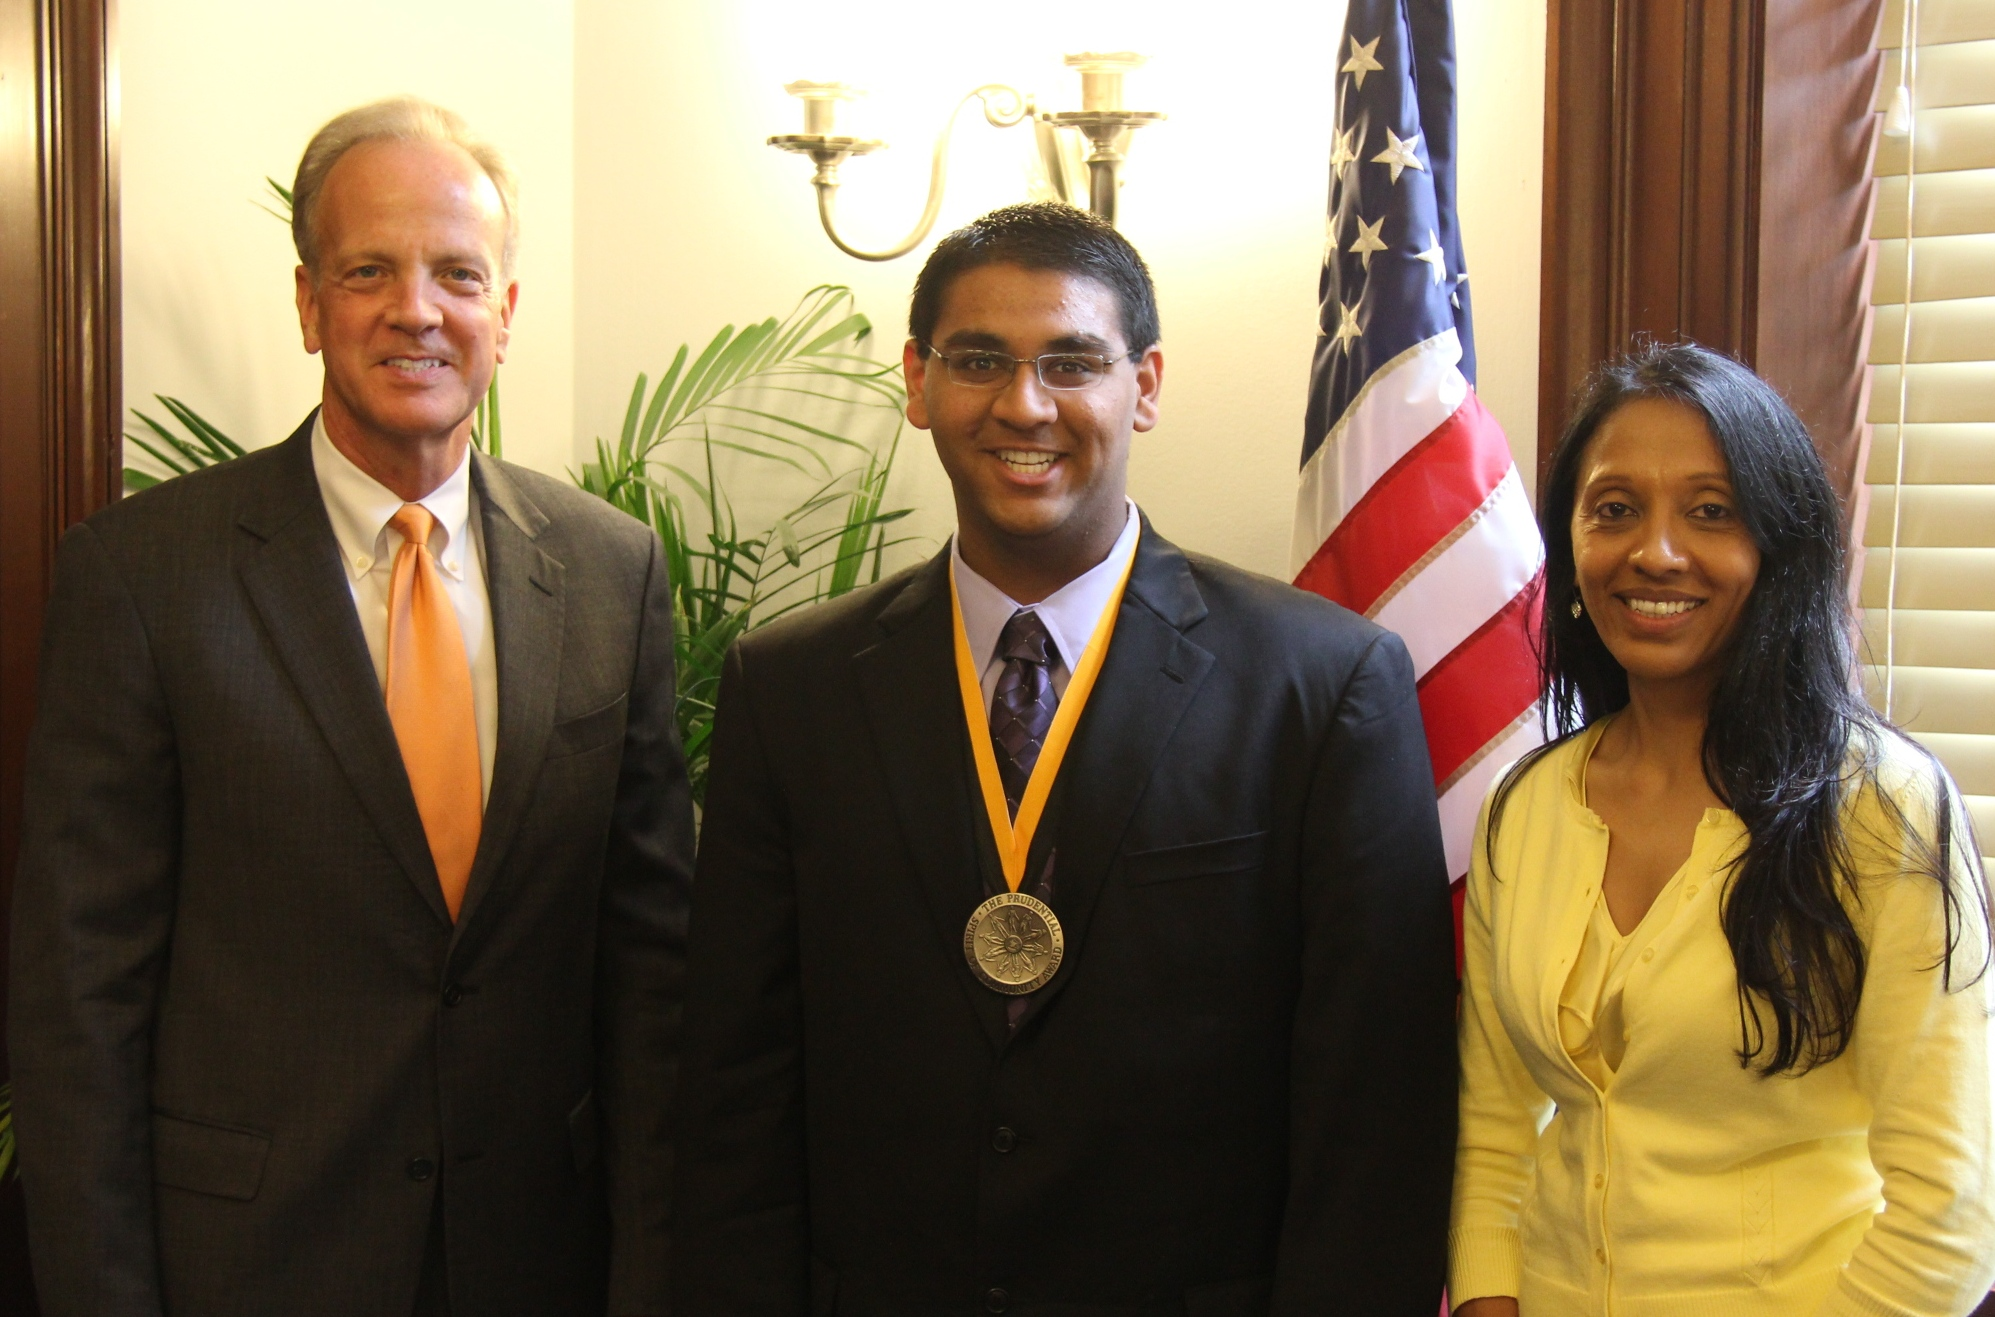 Sen. Moran Congratulates Saajan Bhakta on Receiving 2012 Prudential Spirit of Community Award